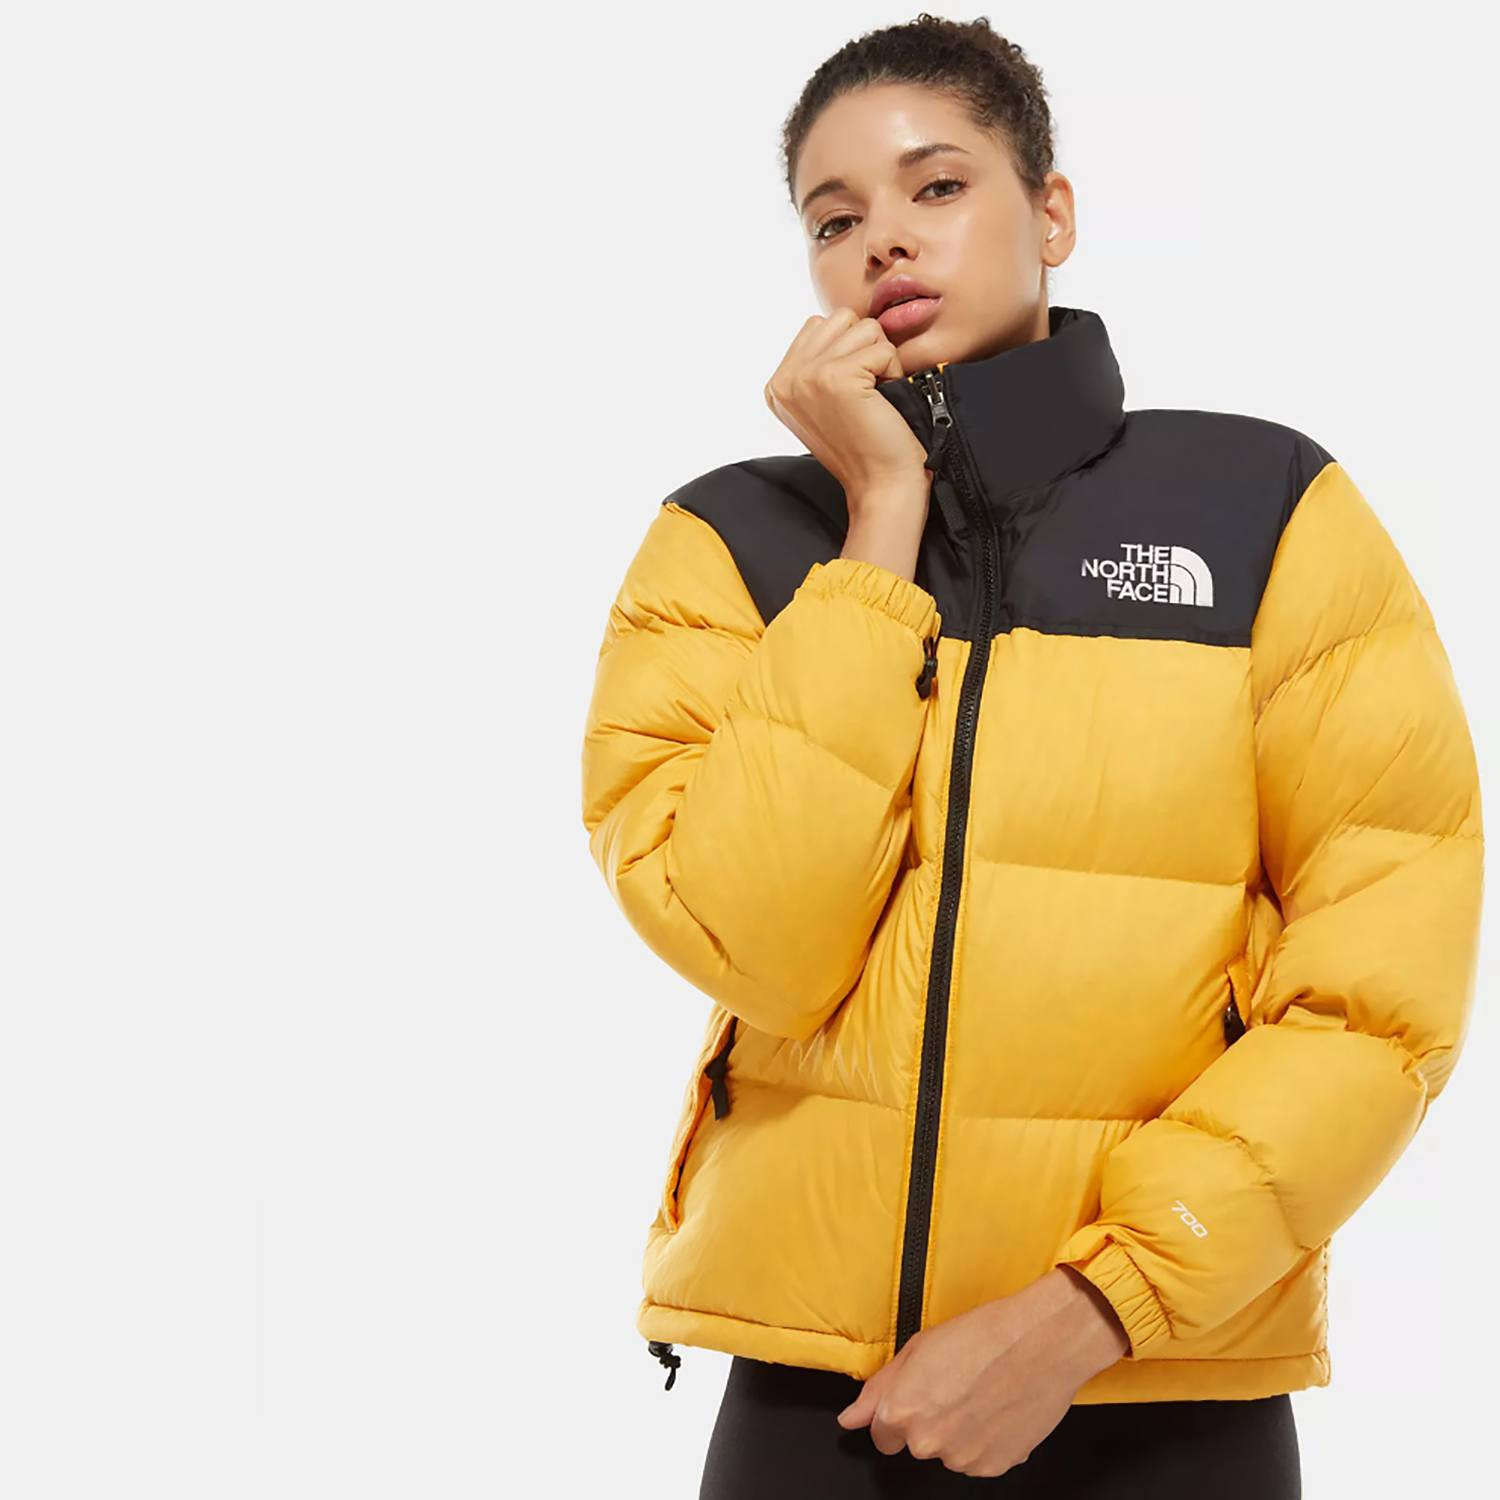 THE NORTH FACE W 1996 RTRO NPTSE JK (9000036715_12040)